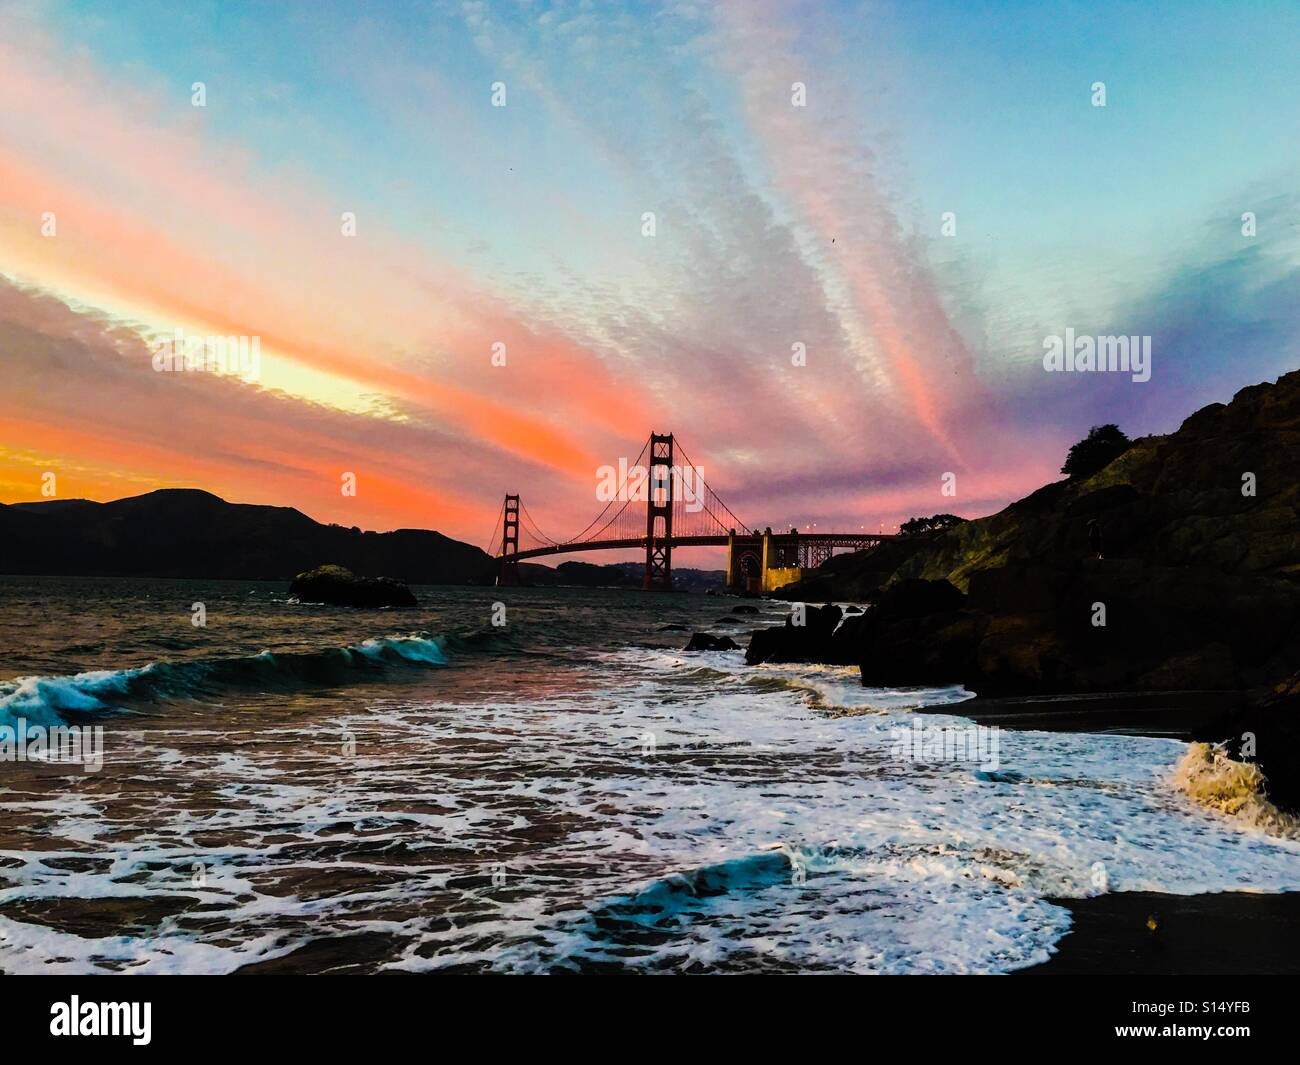 San Francisco view of the Golden Gate Bridge at sunset from Baker Beach - Stock Image